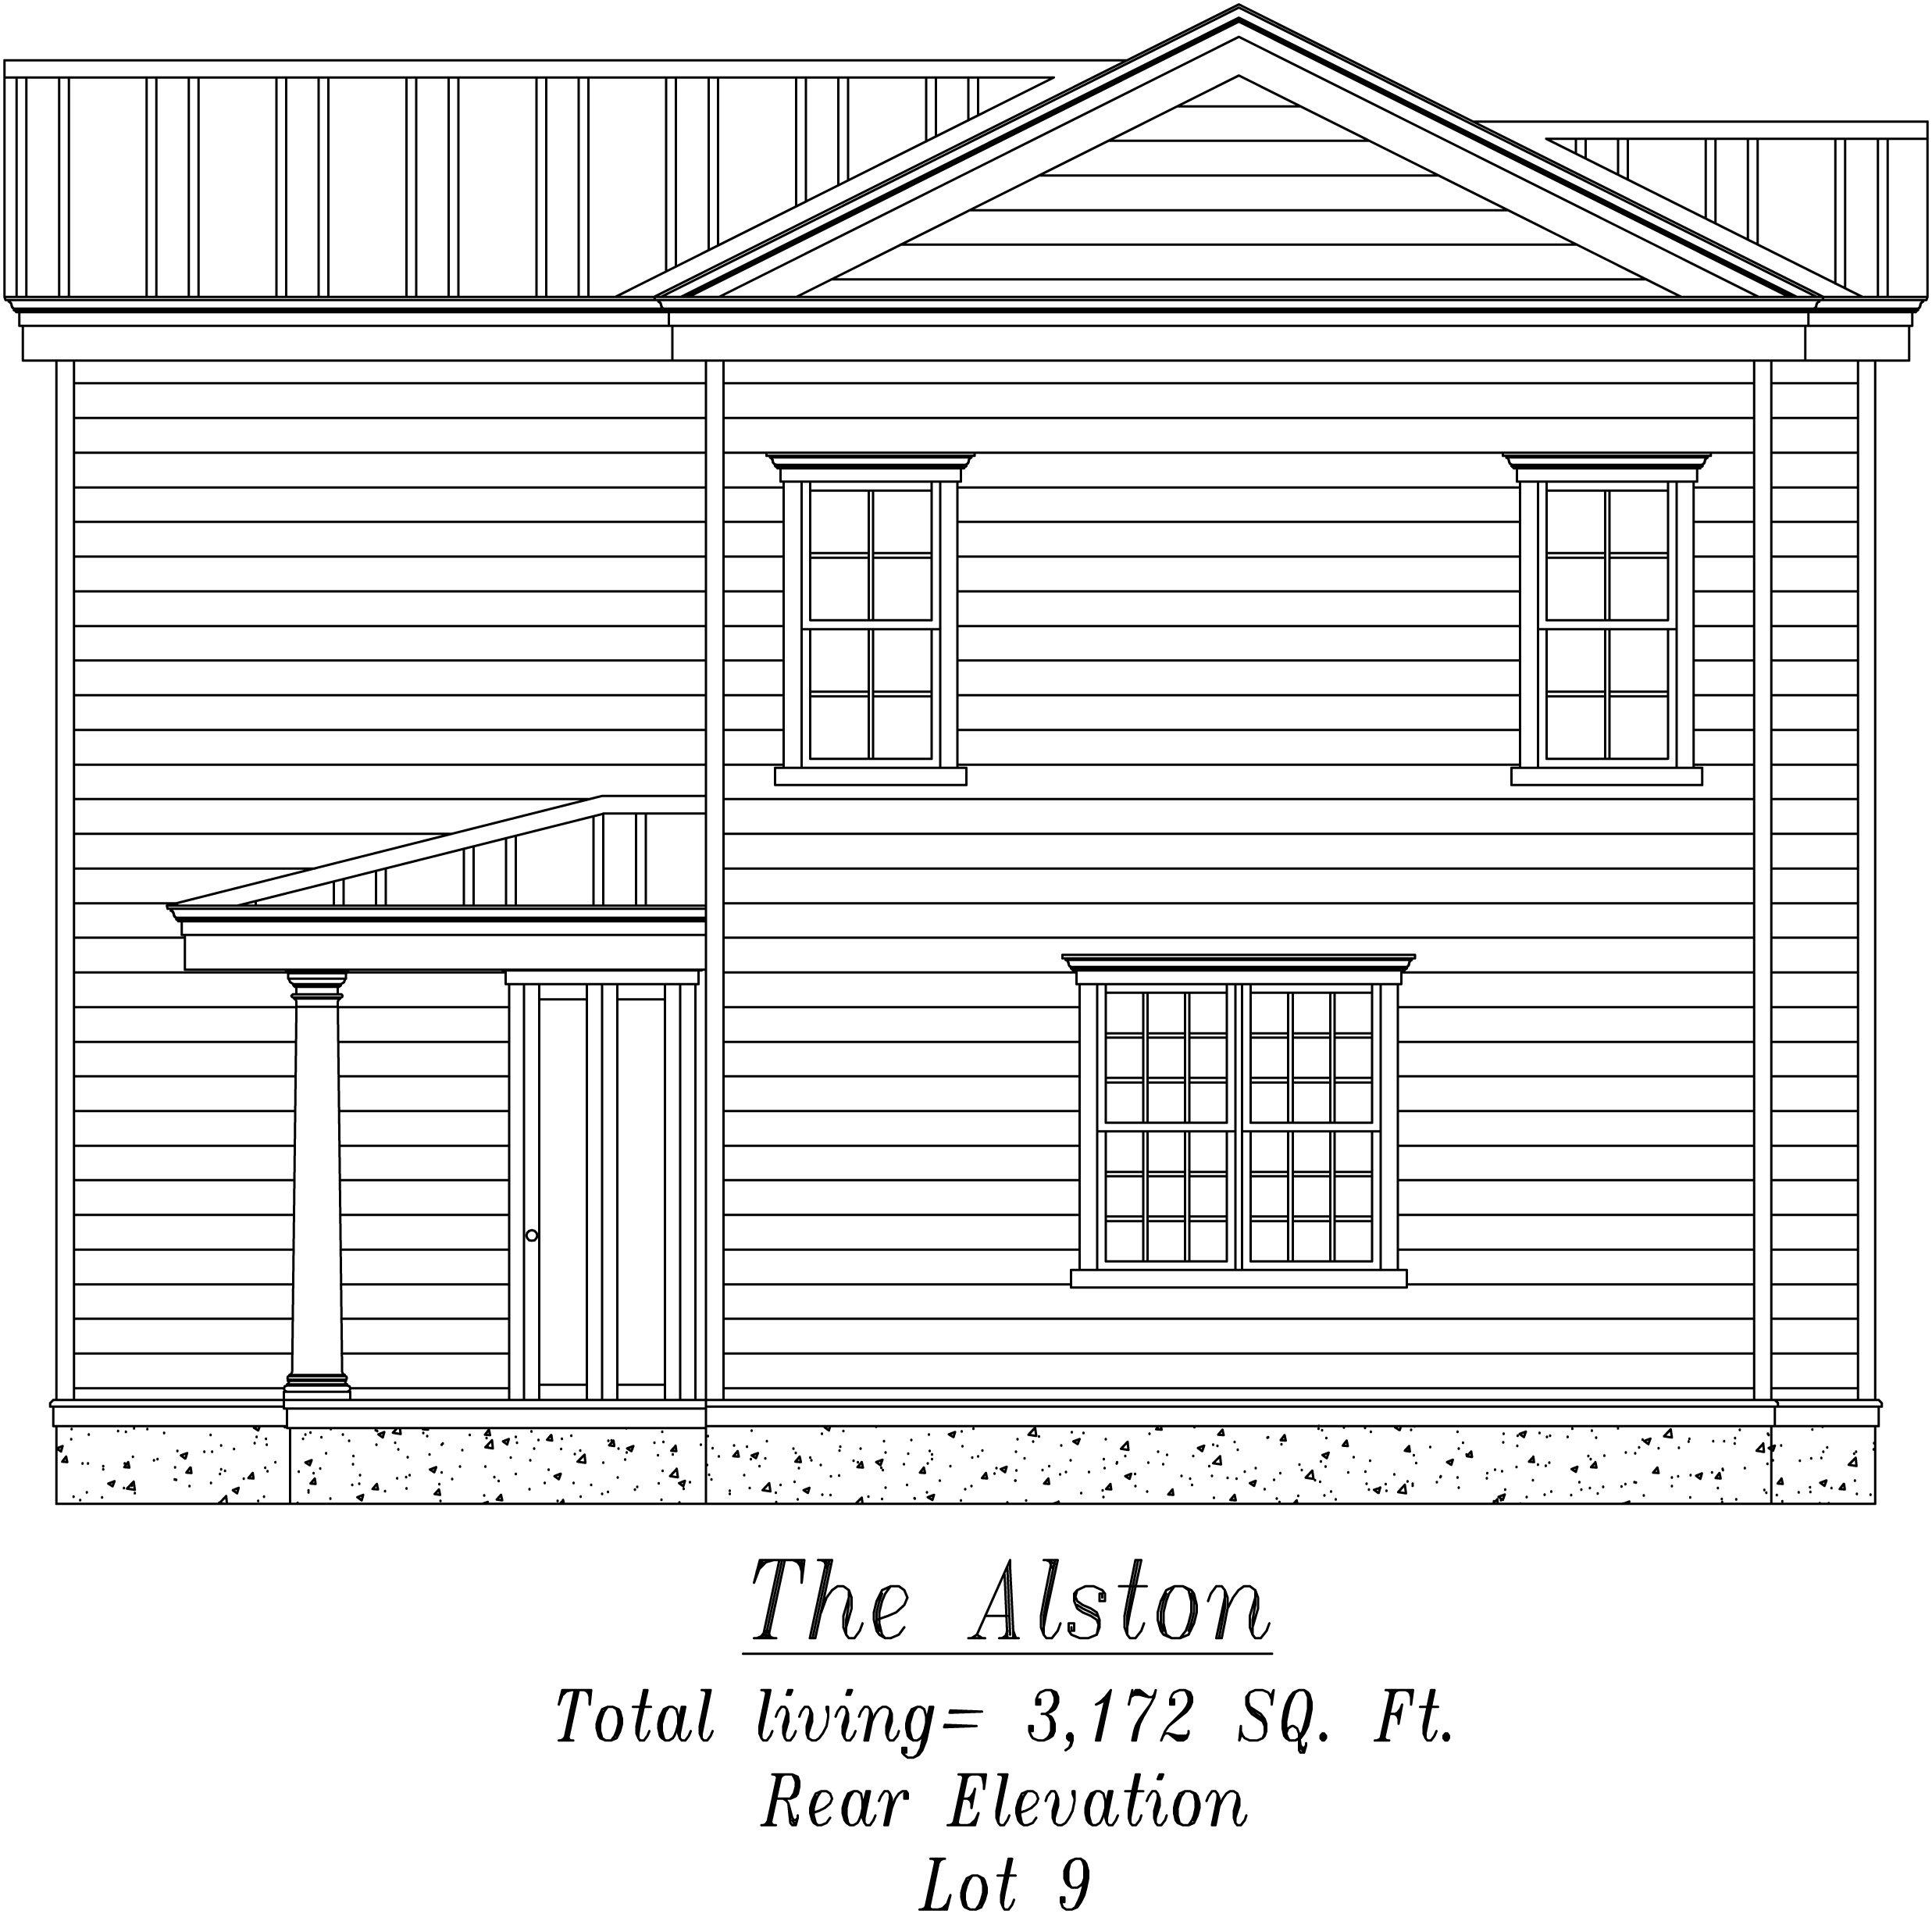 Alston Rear Elevation